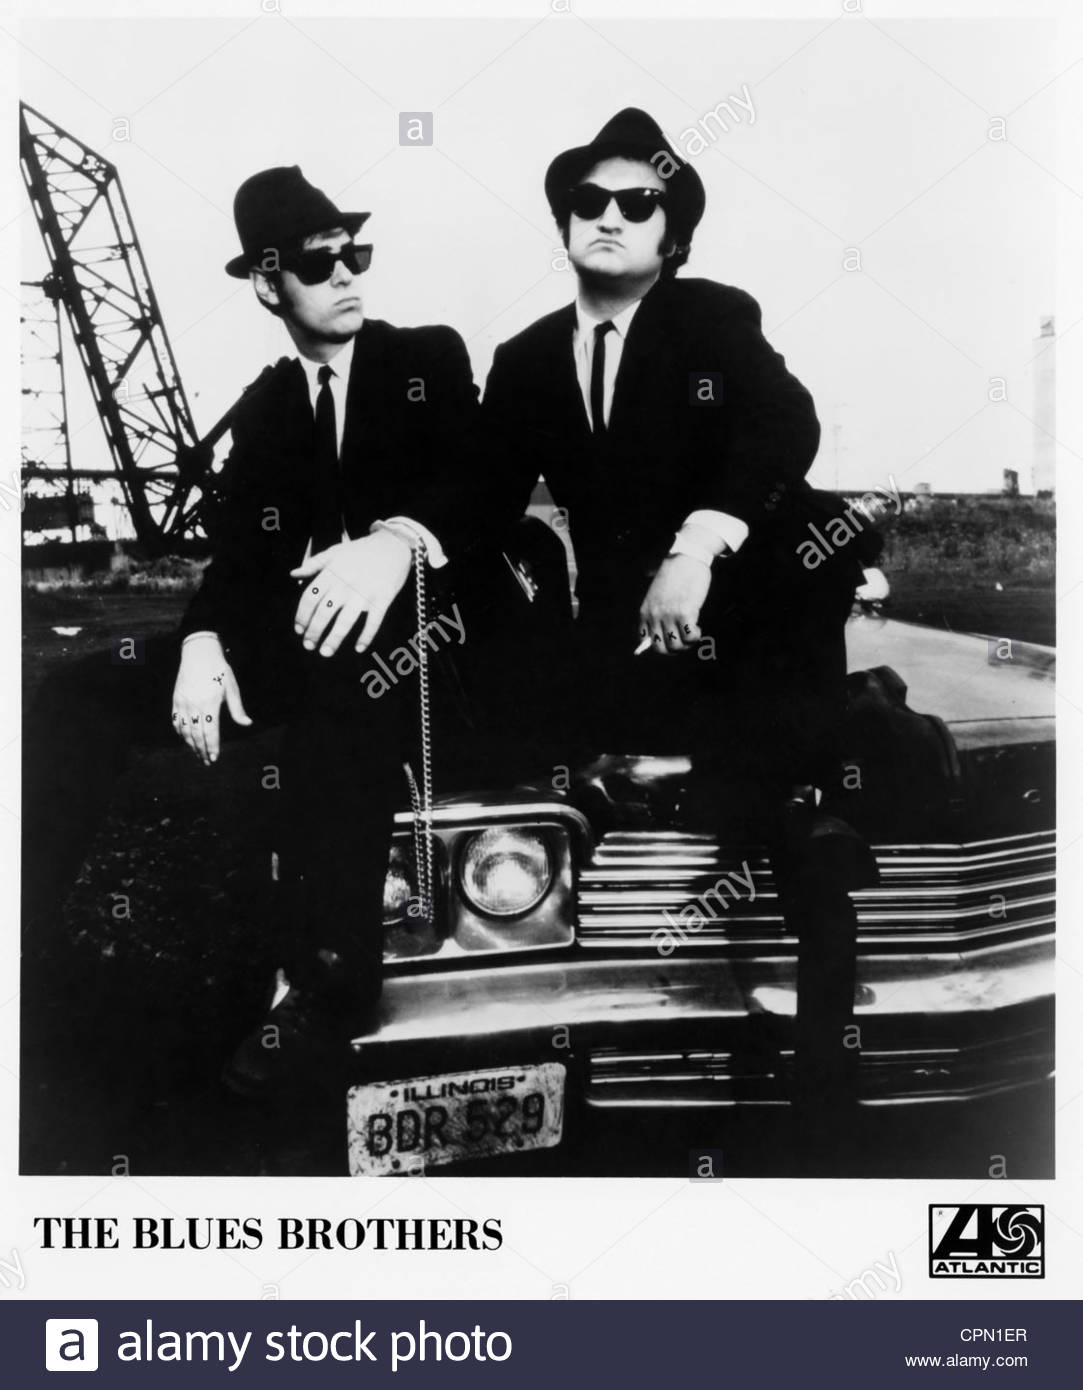 circa 1980's: The Blues Brothers (L-R: Dan Aykroyd and John Belushi. Editorial use only. - Stock Image